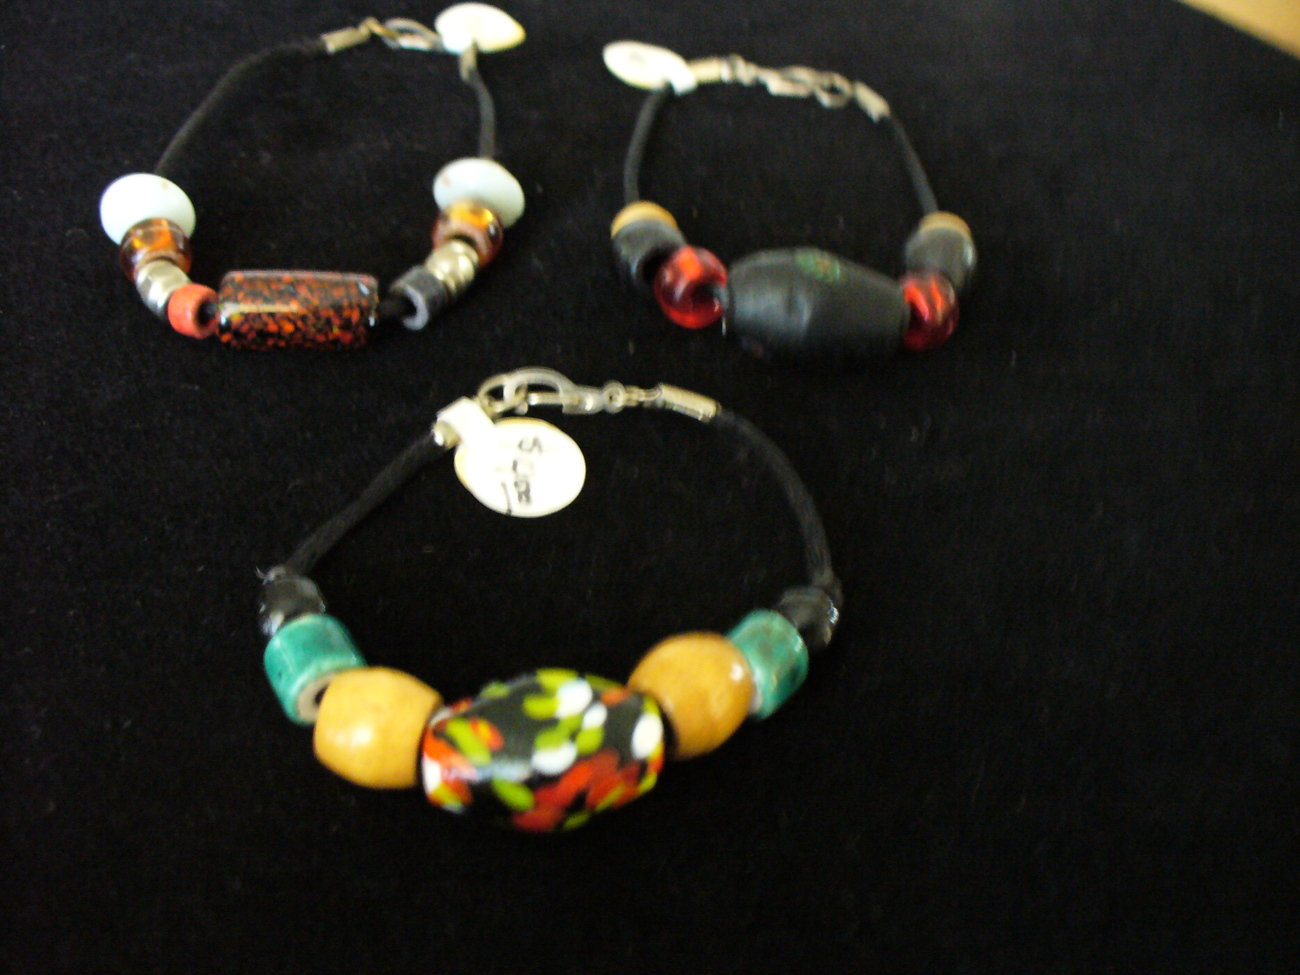 Shanrocks Beads on Satin Bracelet